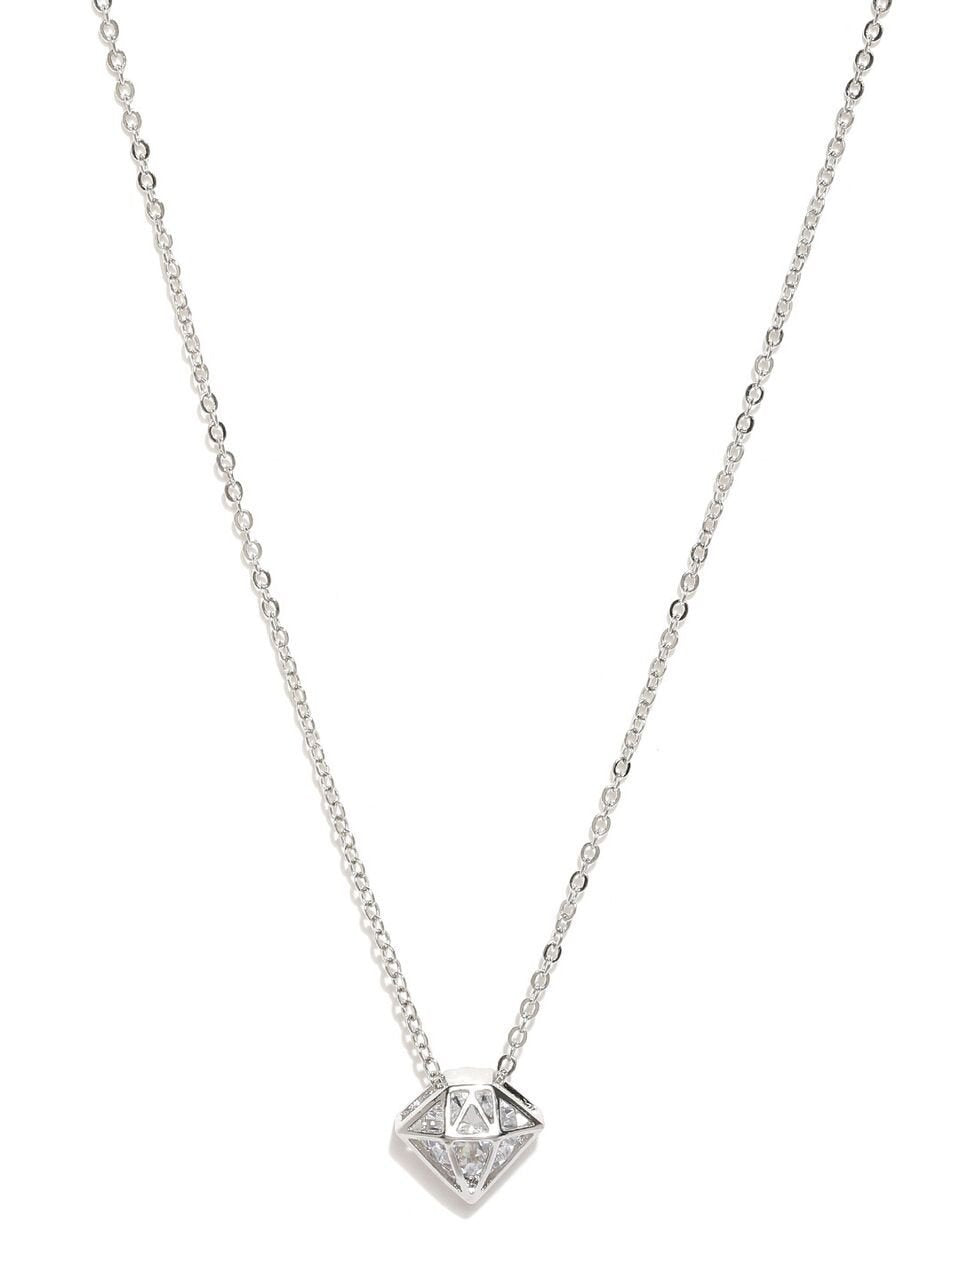 Silver Diamond Shaped Charm Necklace